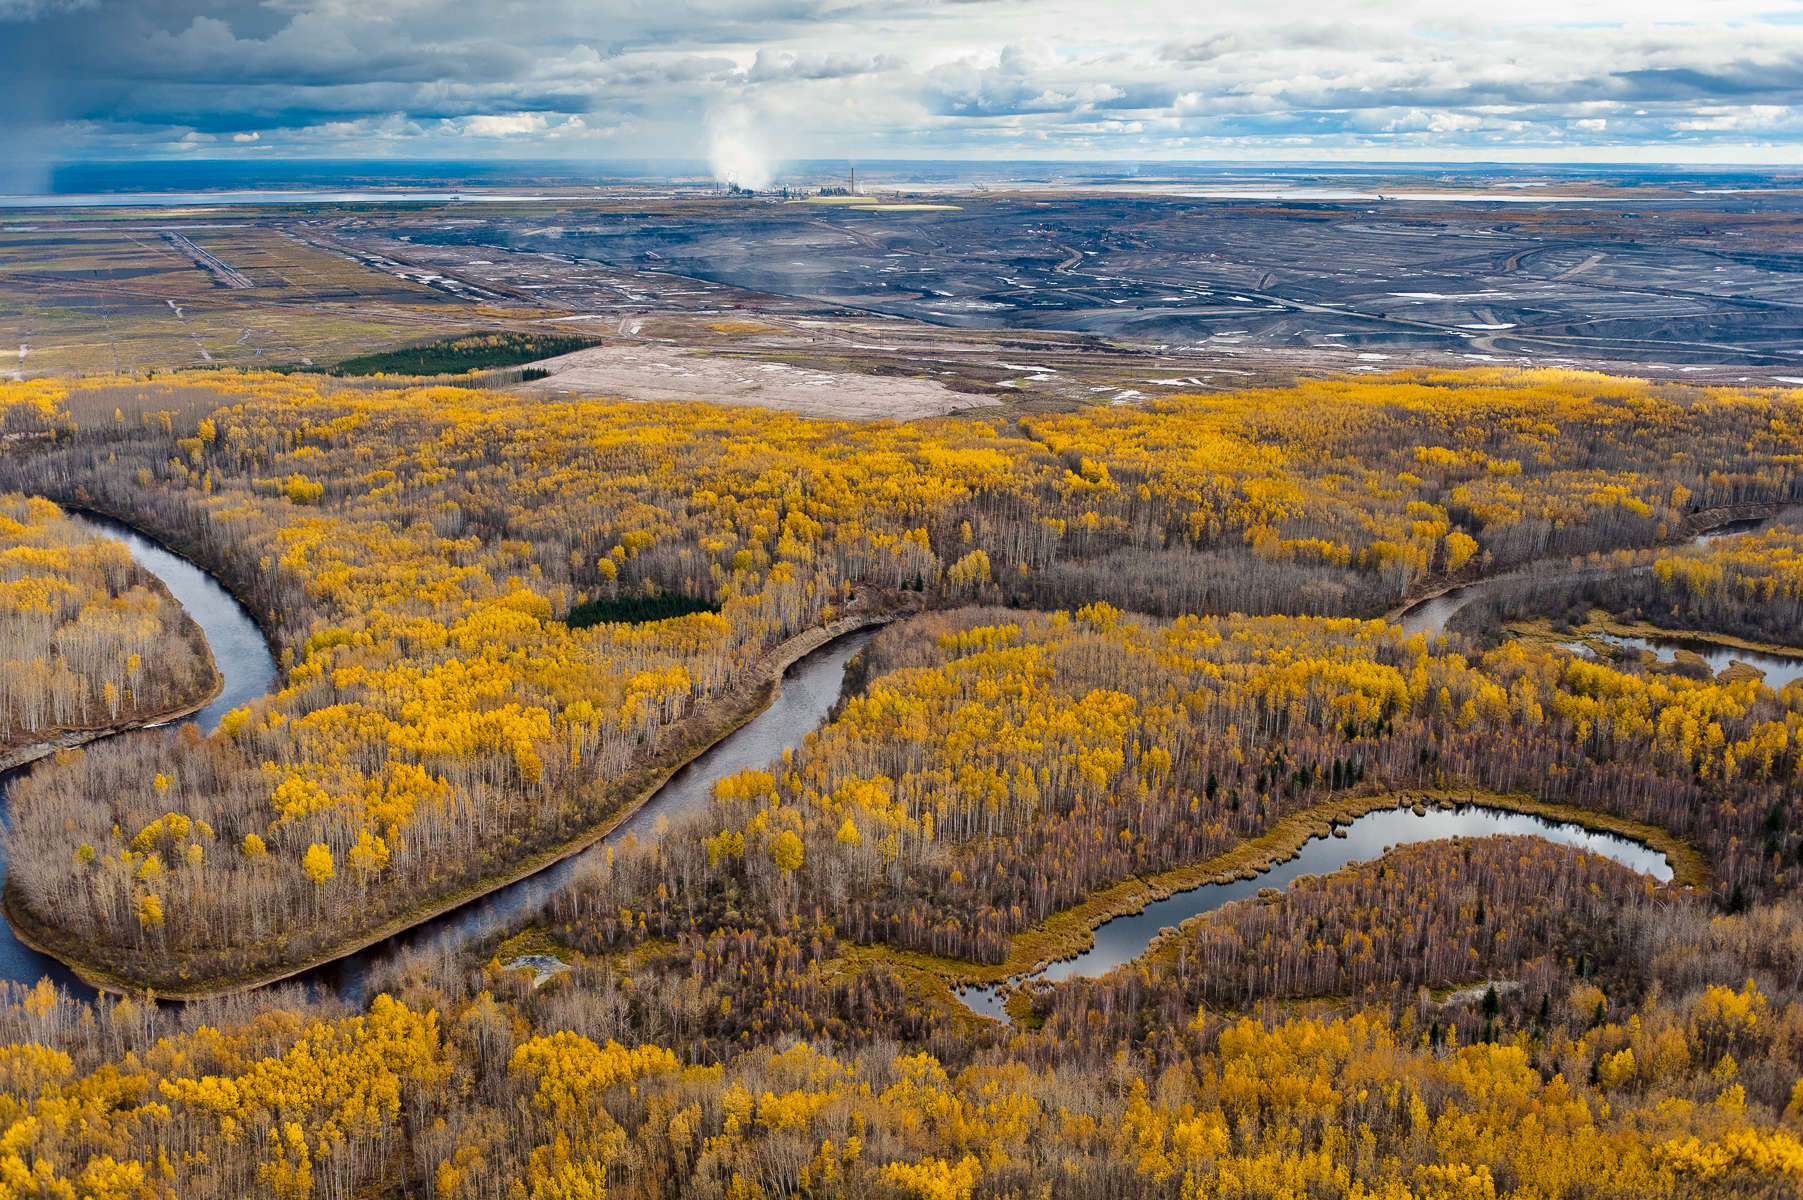 MacKay River, Boreal Forest, and Tar Mine                                                      Northern Alberta. Canada. 2010.  The Boreal Forests and wetlands that surround the Tar Sands are the most carbon rich terrestrial ecosystem on the planet, holding almost twice as much carbon per acre as tropical rainforests. Referred to by the Tar Sands industry as {quote}overburden,{quote} these forests are scraped off and the wetlands dredged, to be replaced by tar mines like this whihc produce significantly more carbon that traditional oil extraction.     Nikon D3, Nikkor 24-70  f2.8. Shot at 34, iso 800, 1/1250 at f4. Alberta Tar Sands, Northern Alberta, Canada.